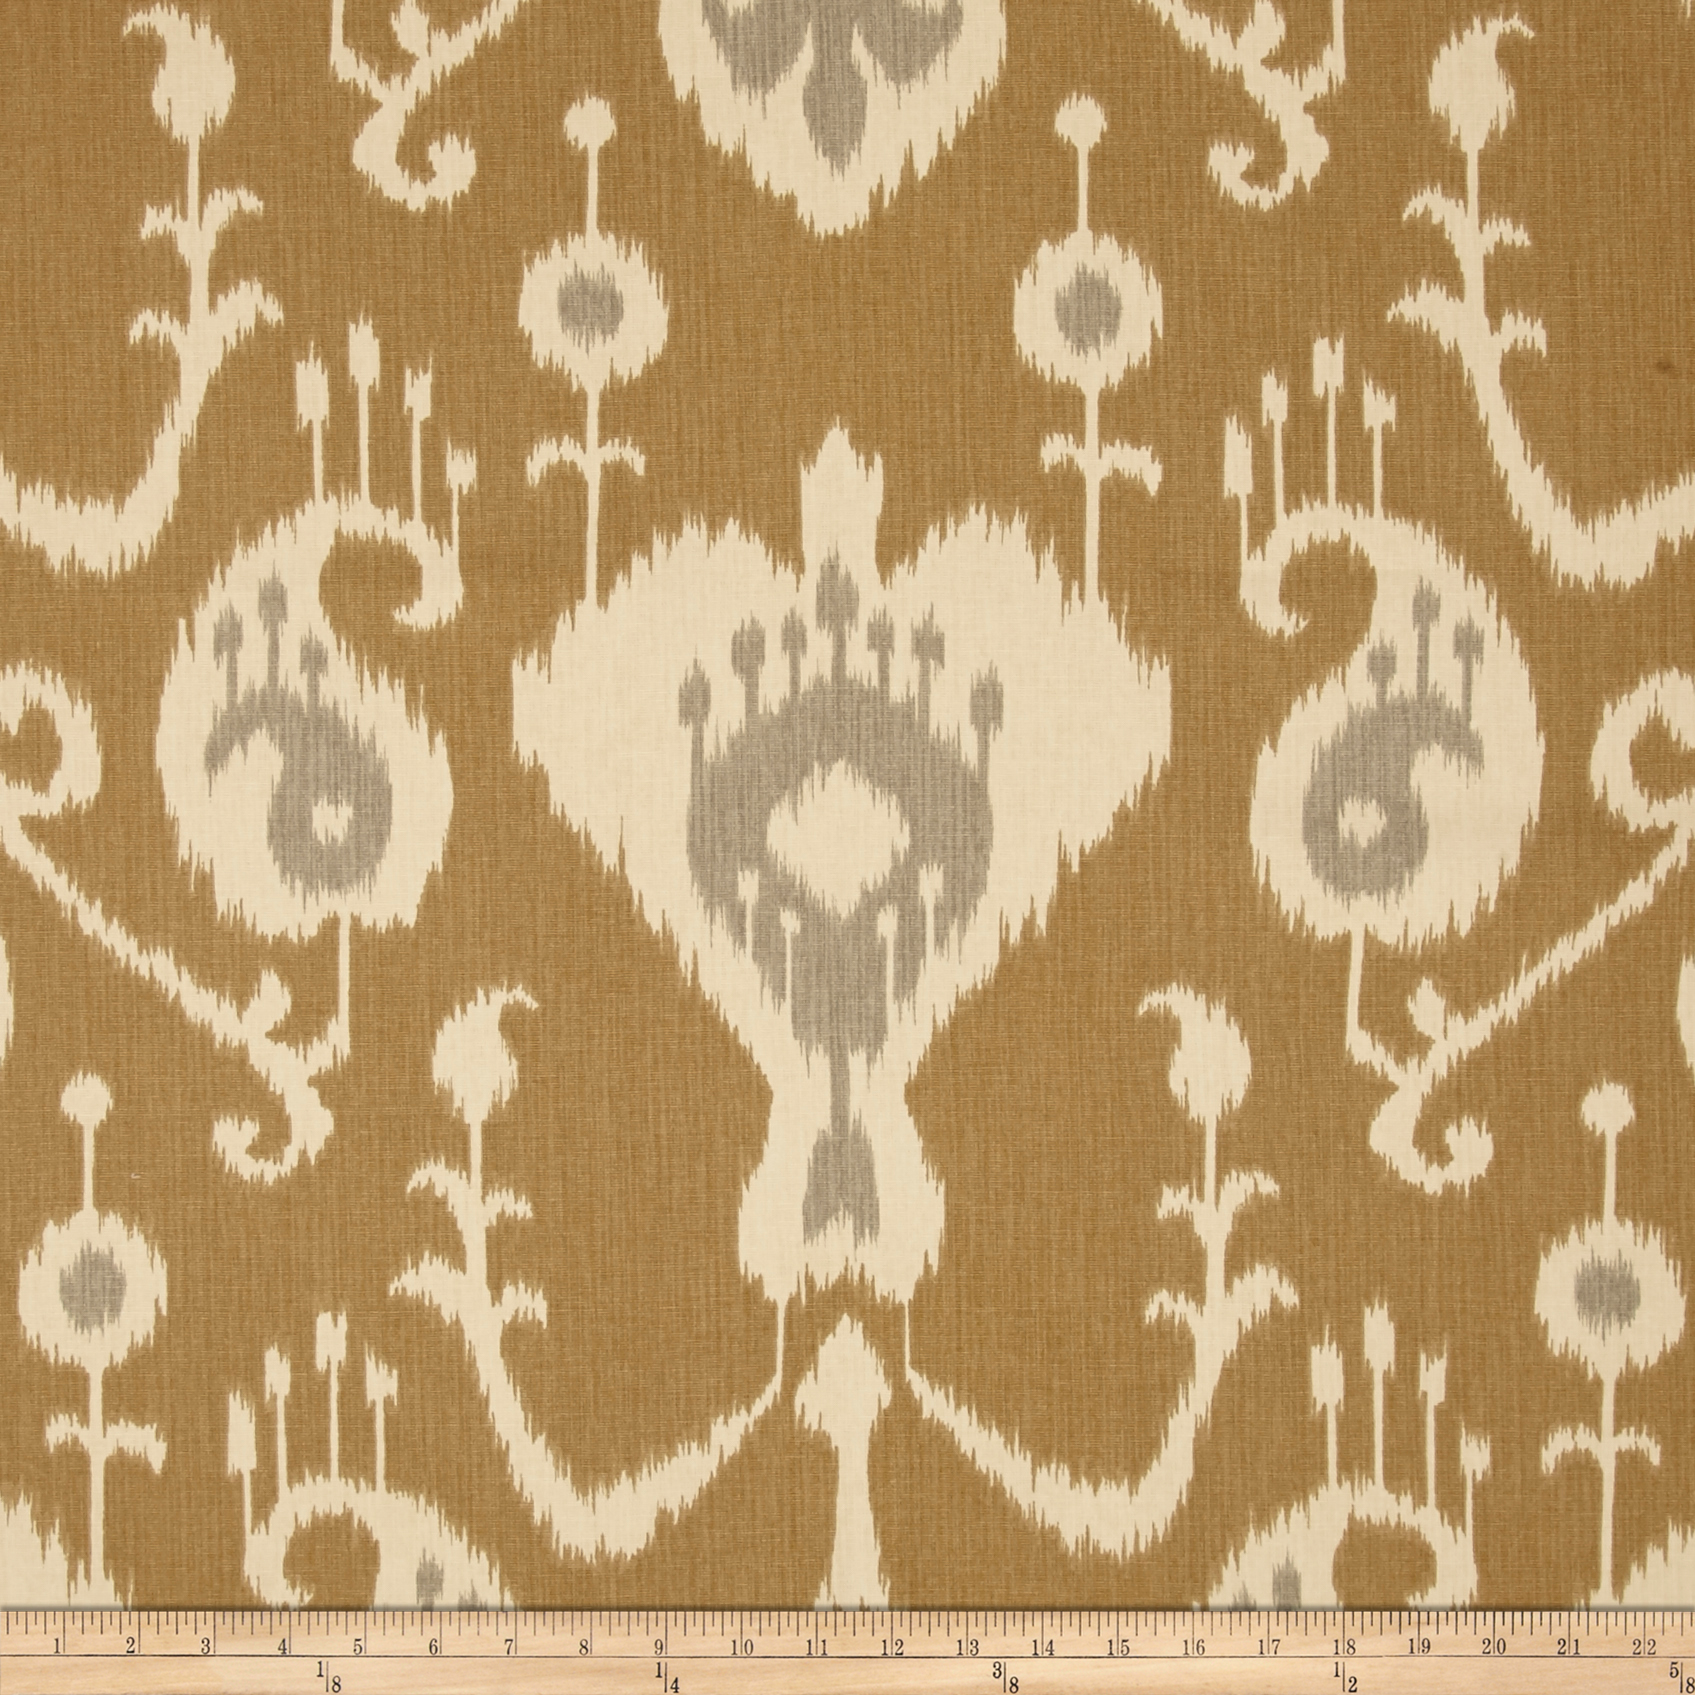 Magnolia Home Fashions Java Ikat Umber Fabric by Magnolia in USA